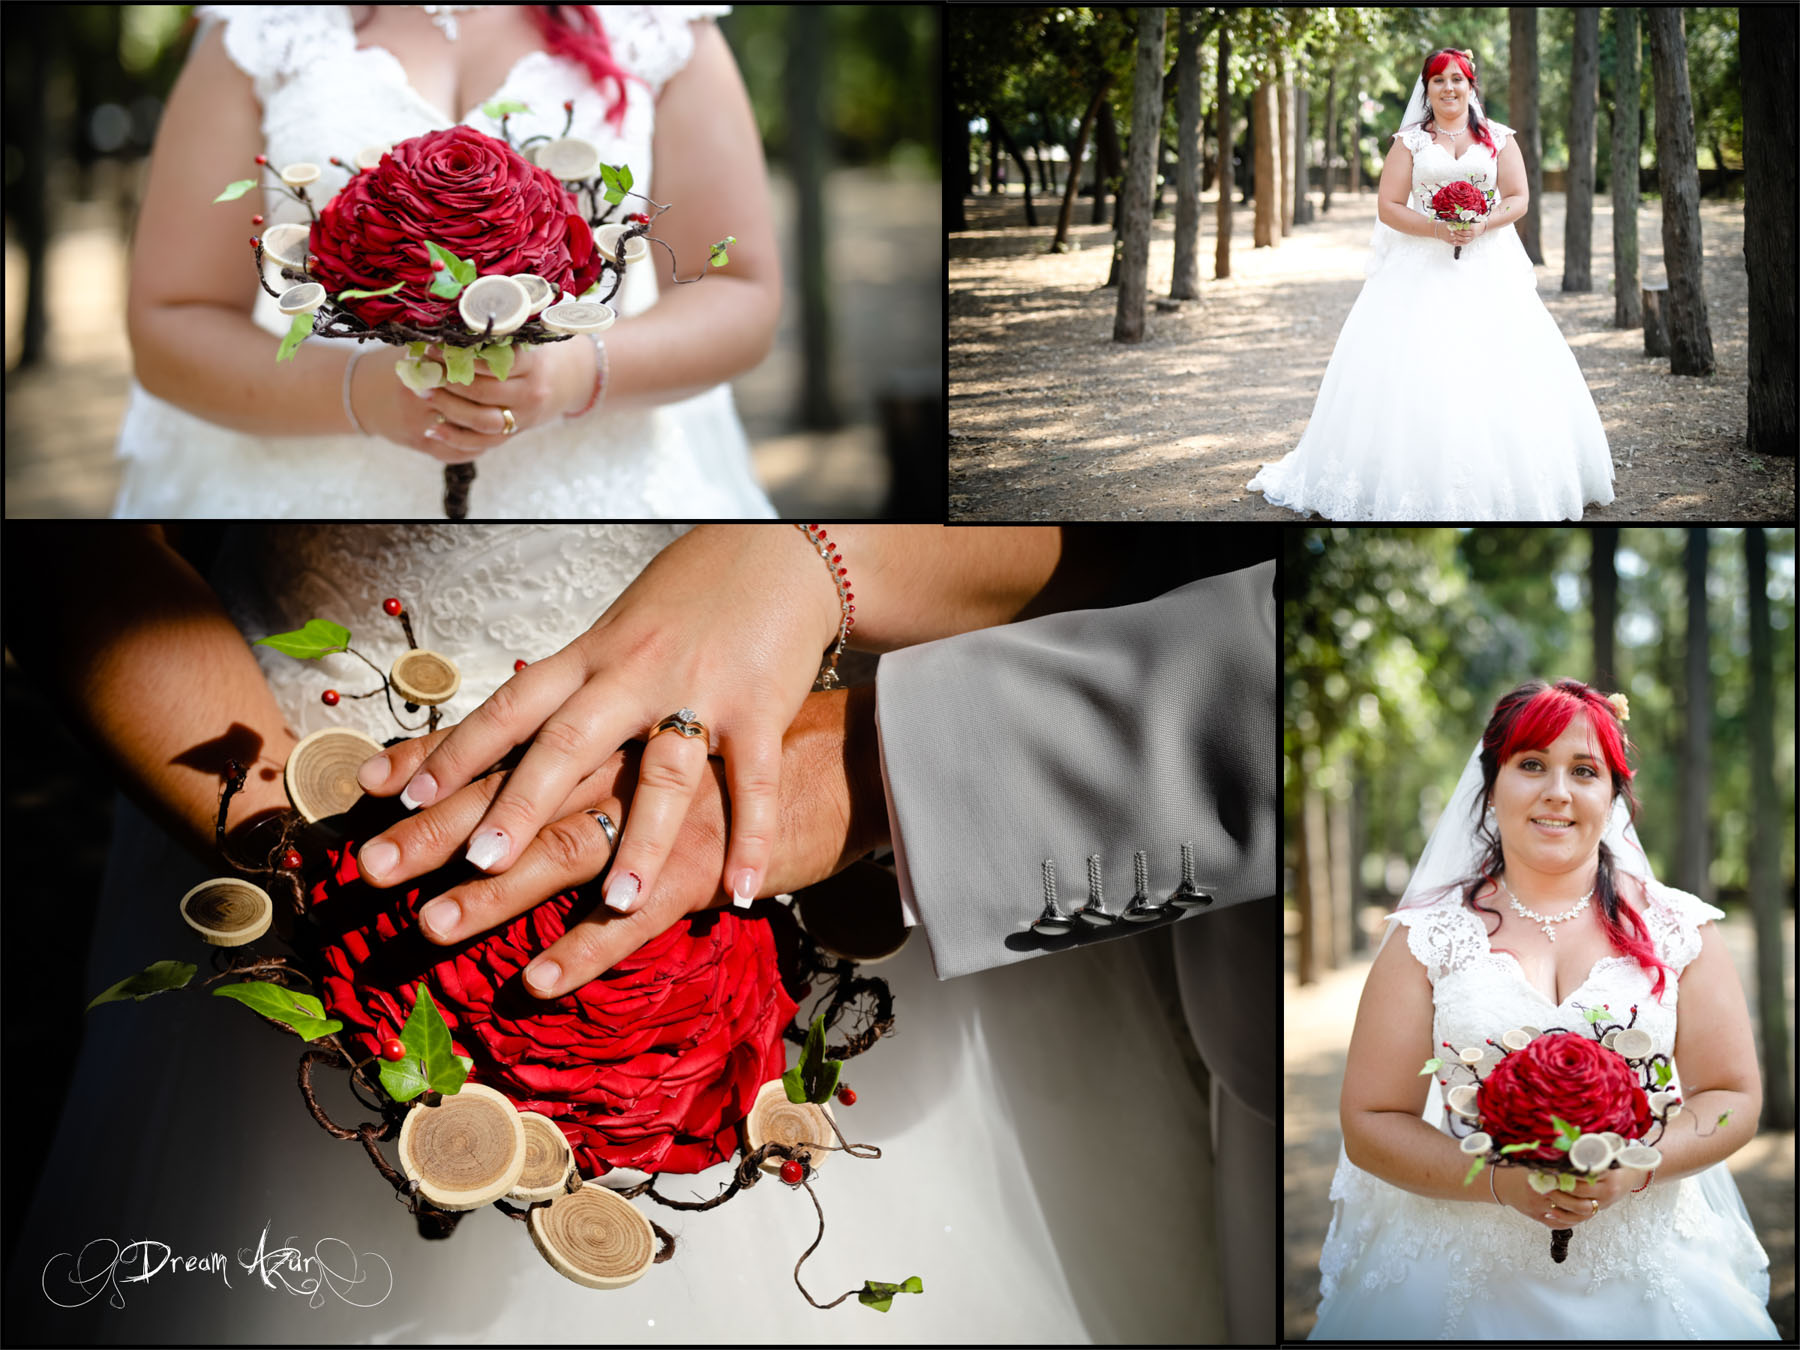 190824COMPO-Mariage-Cindy-et-Anthony-53